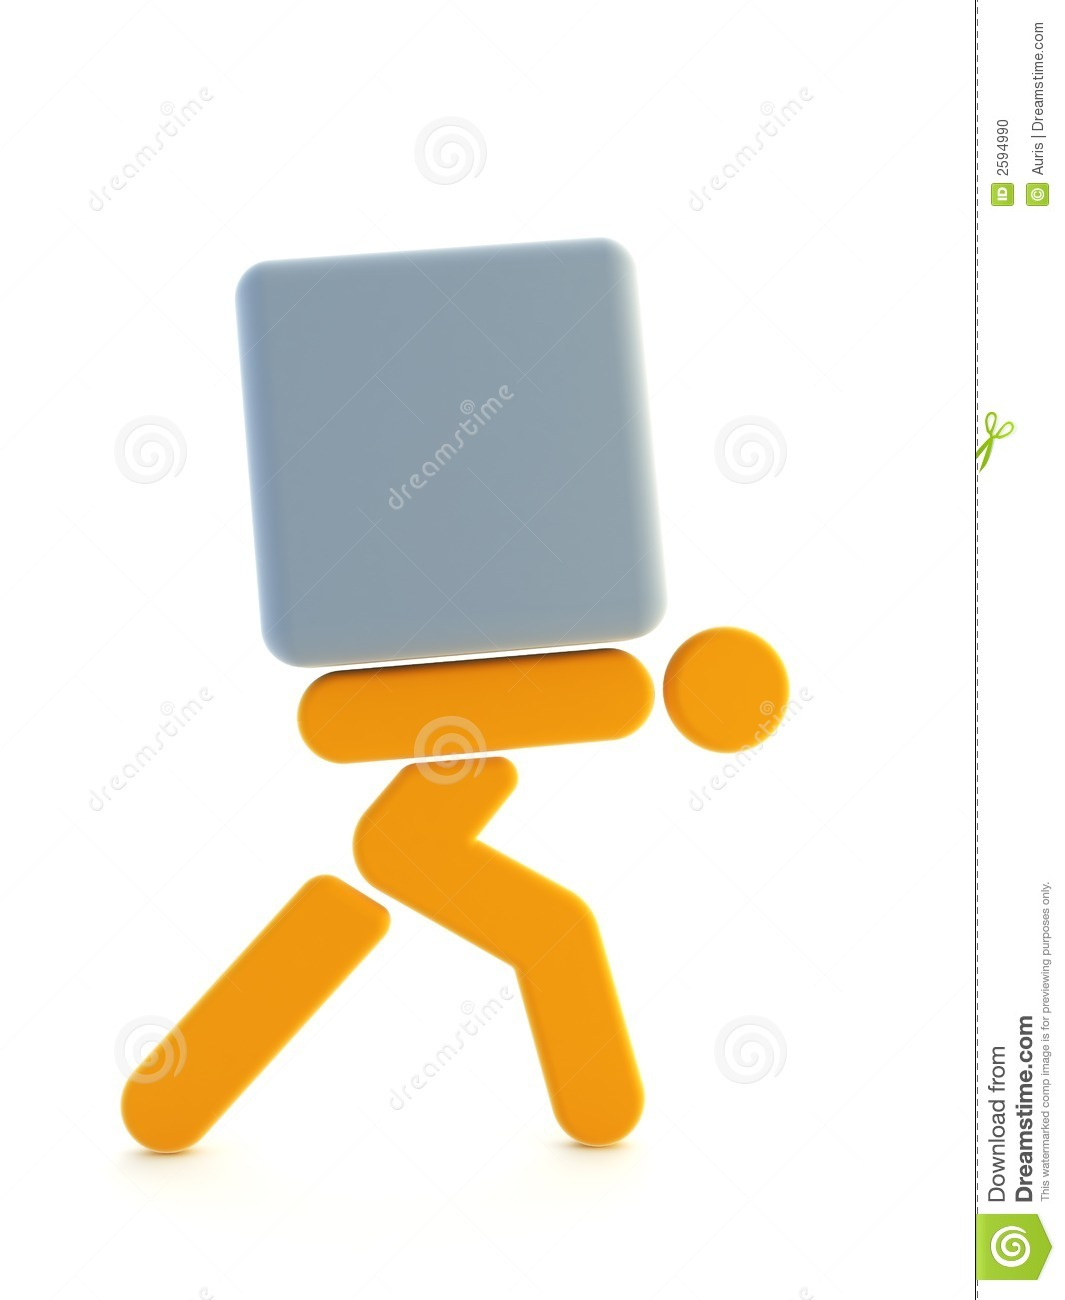 Man Carrying The Load Stock Photo Image 2594990